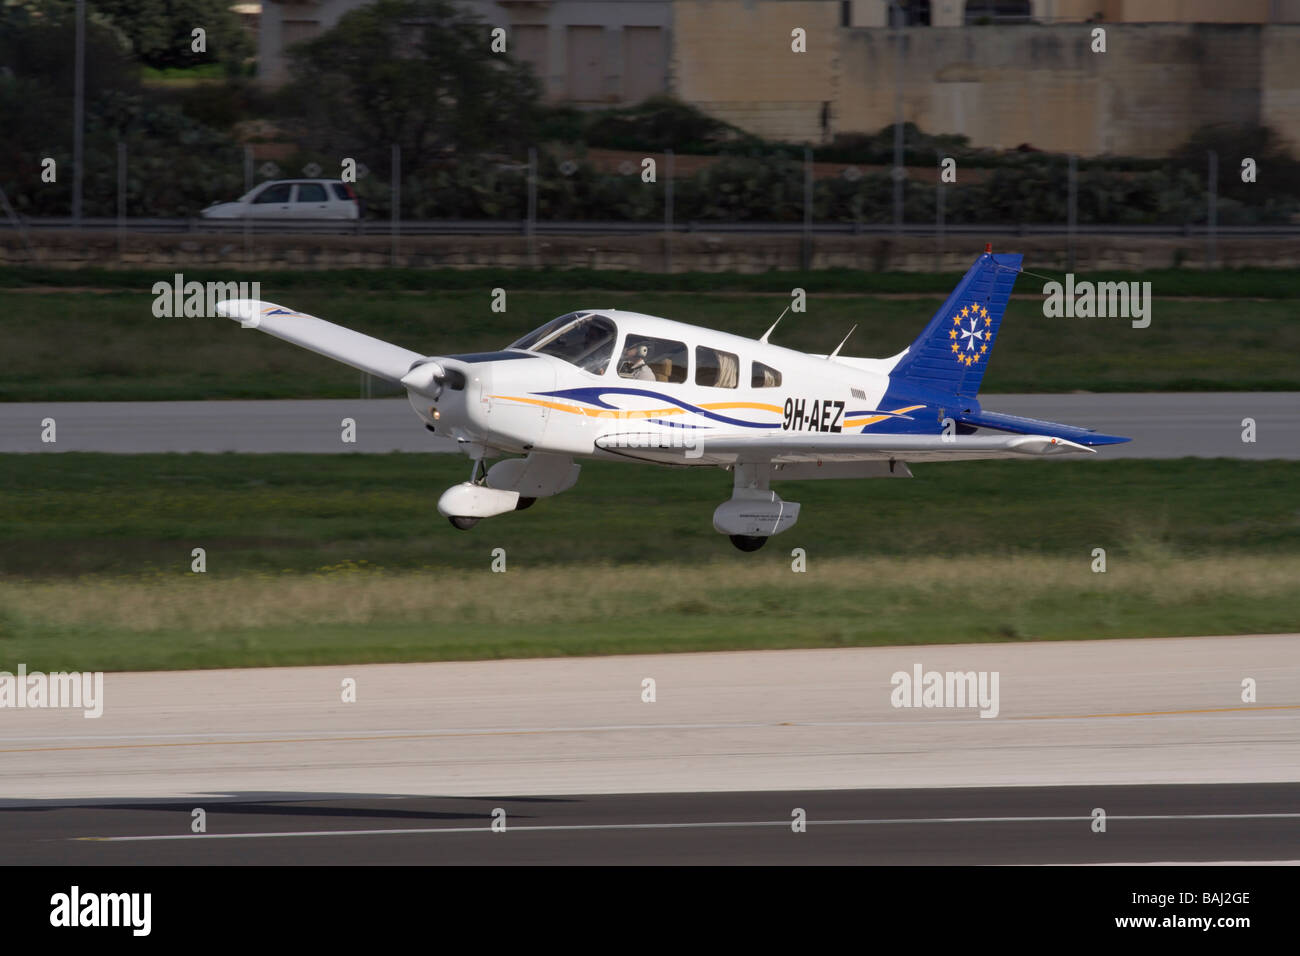 Piper PA-28 Warrior II single-engine light private plane flying low over the runway - Stock Image